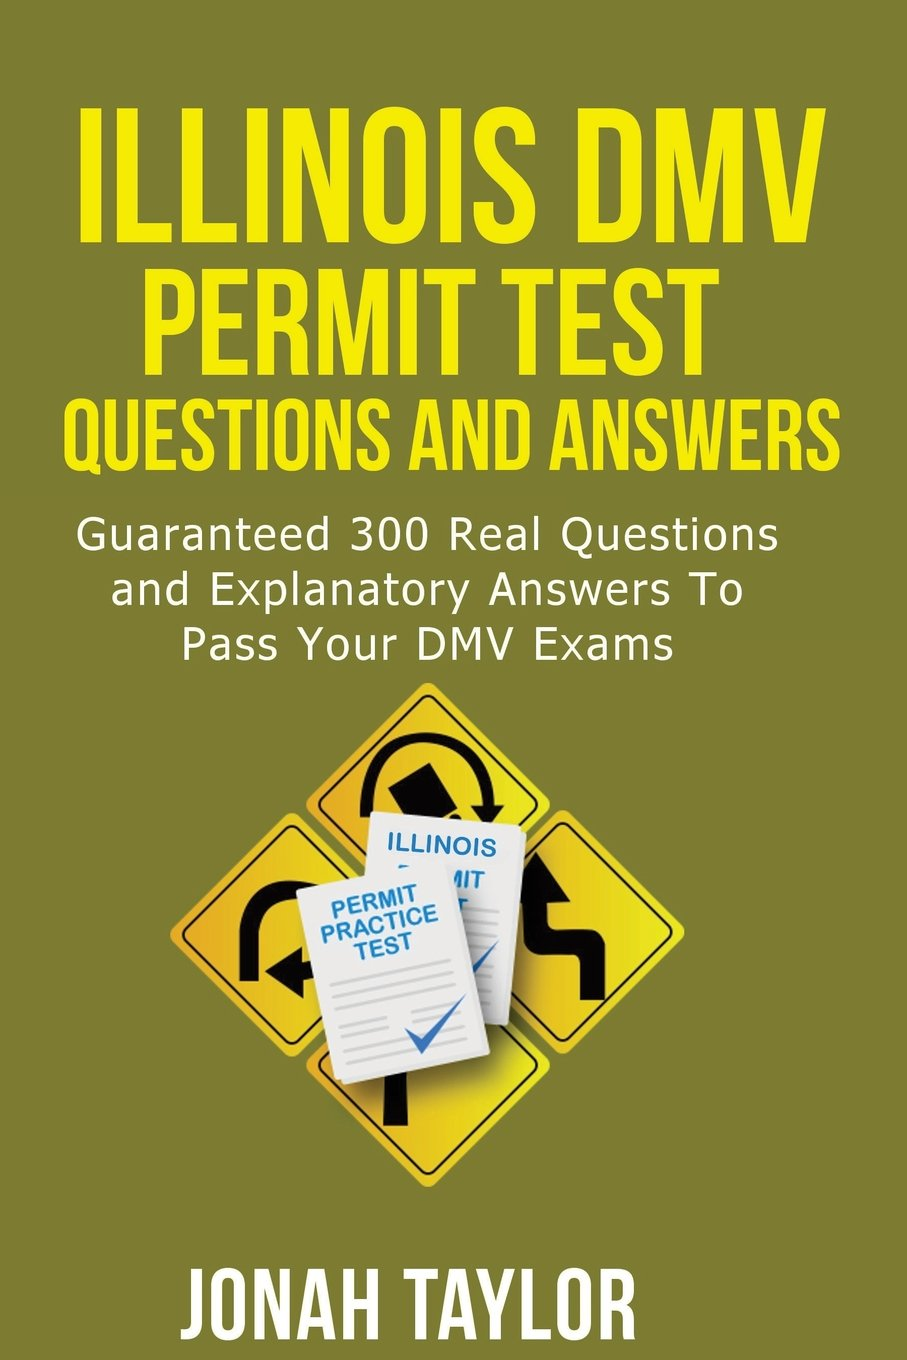 Illinois DMV Permit Test Questions And Explanatory Answers: 350